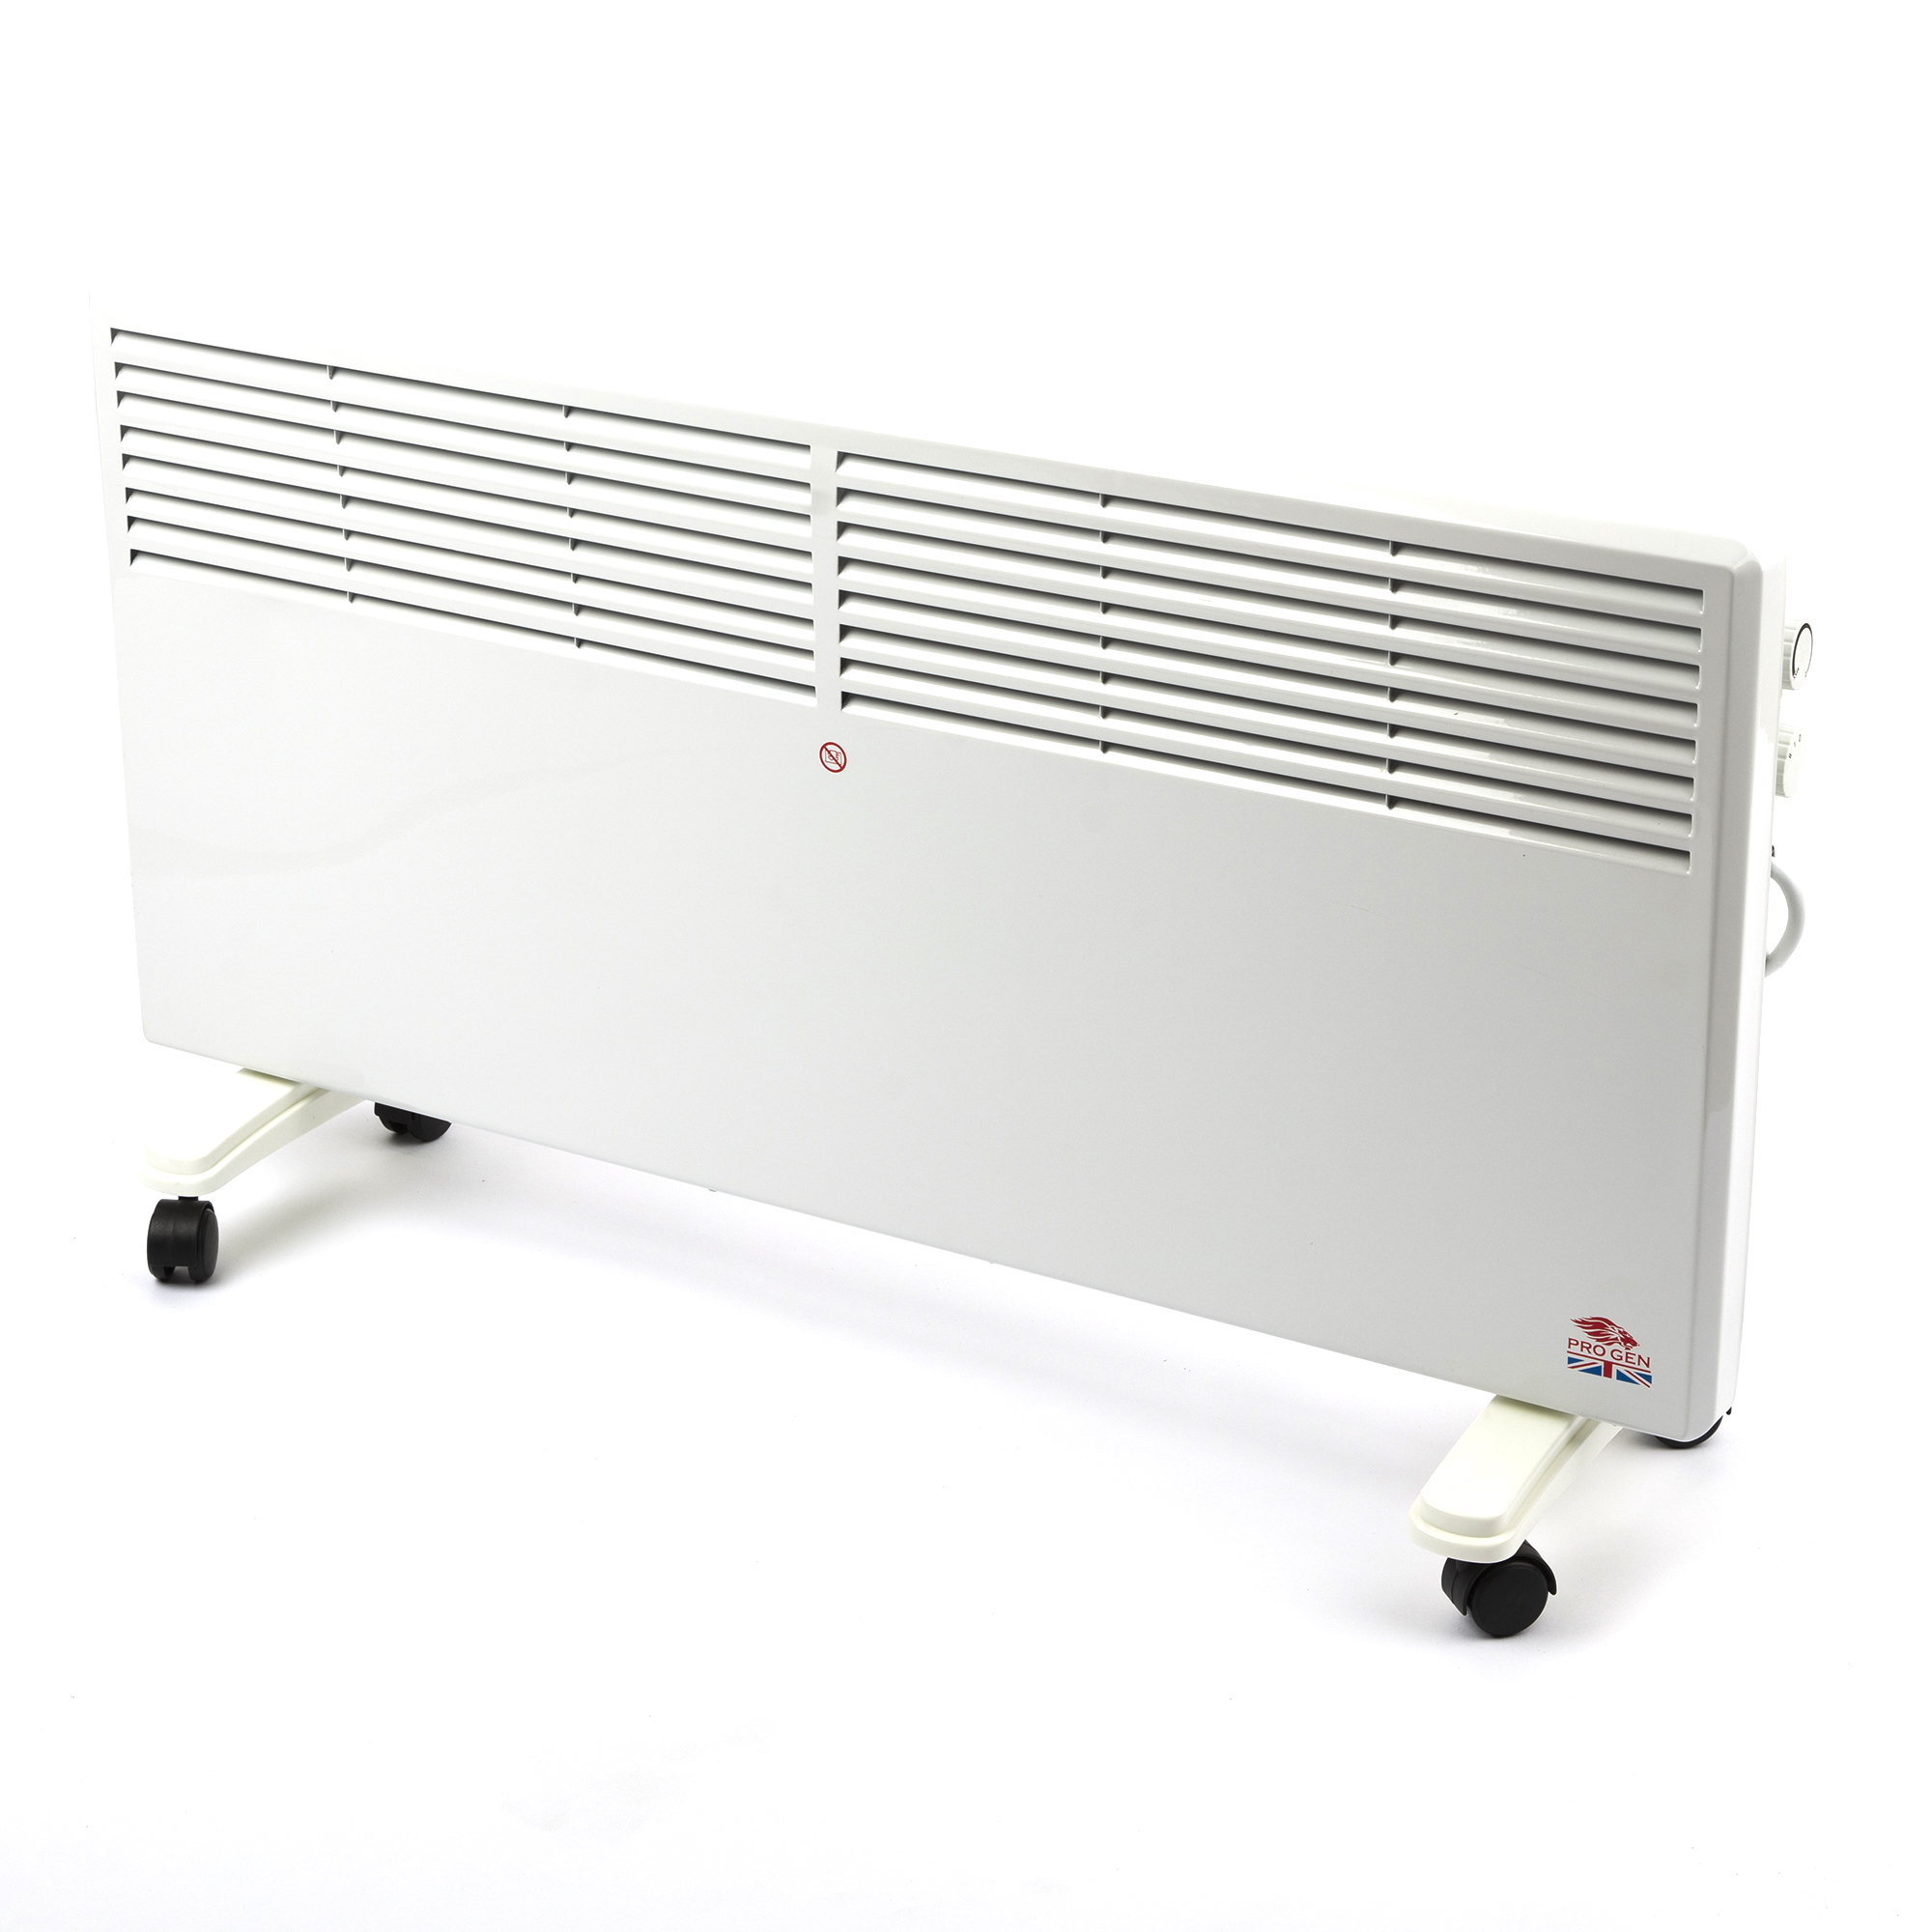 Panel Heater Electric Convection Heater Free Standing Portable Wheels Wall Mount